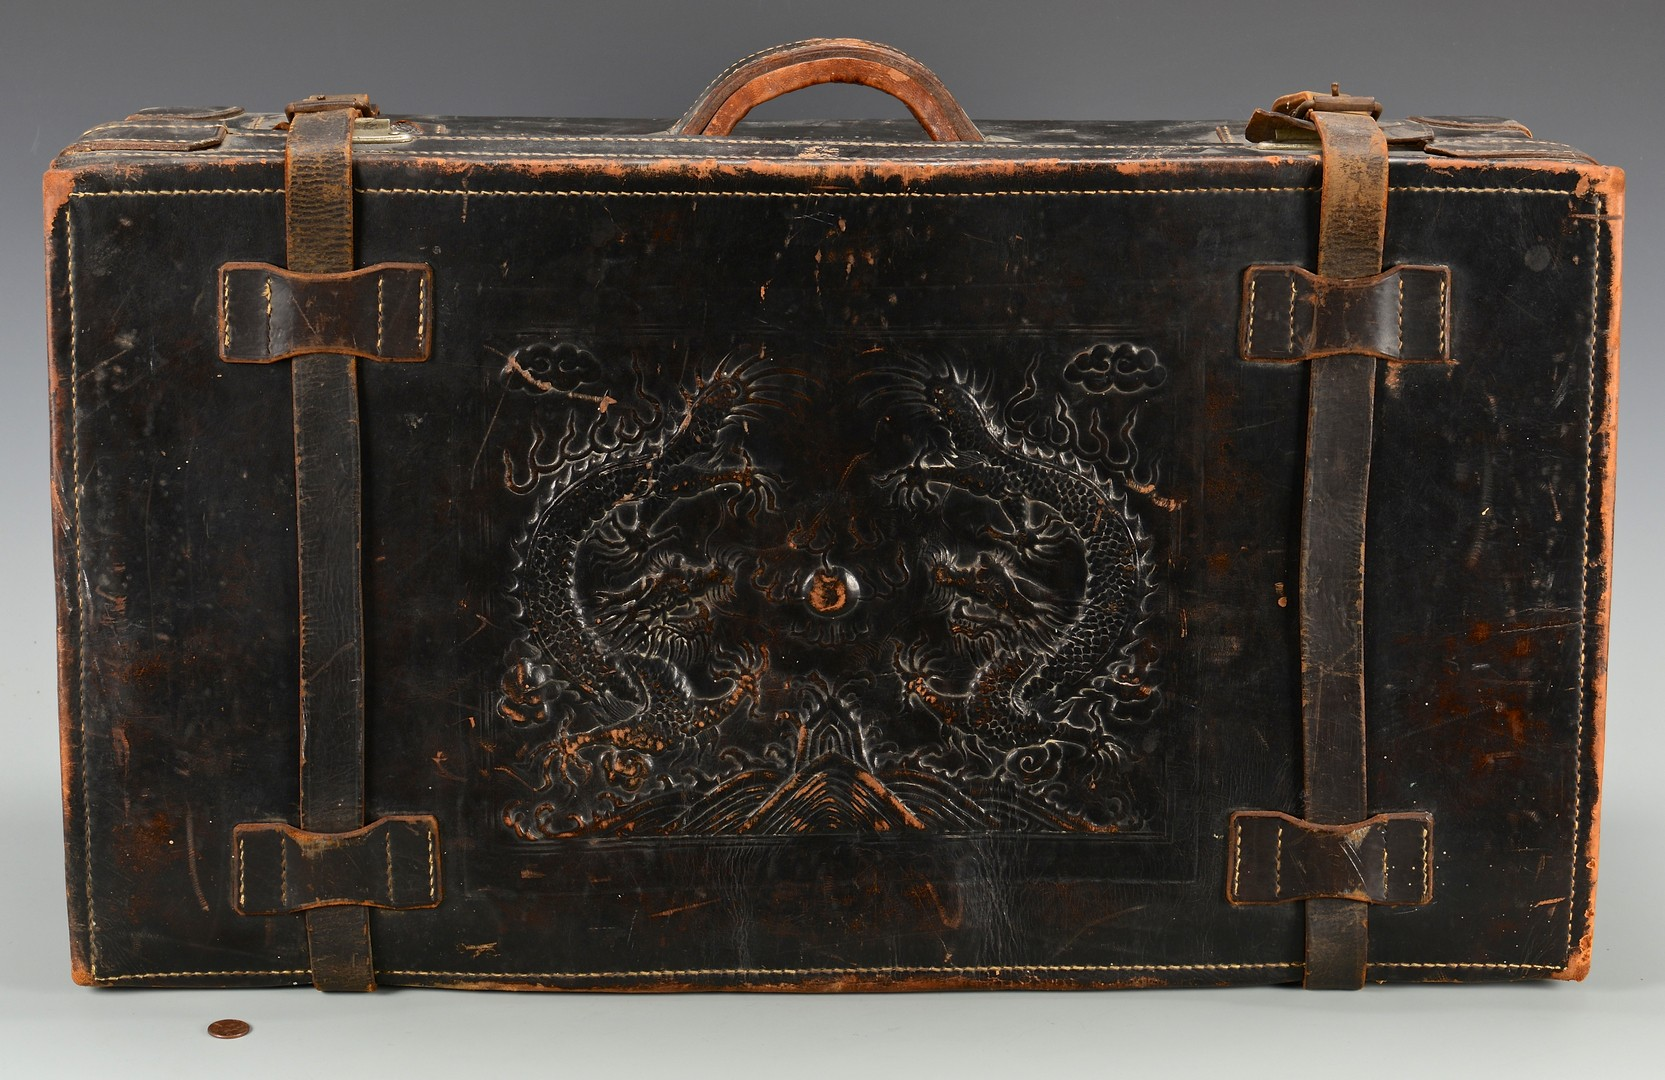 Lot 3594168: China Trade Leather Trunk w/ Embossed Dragon